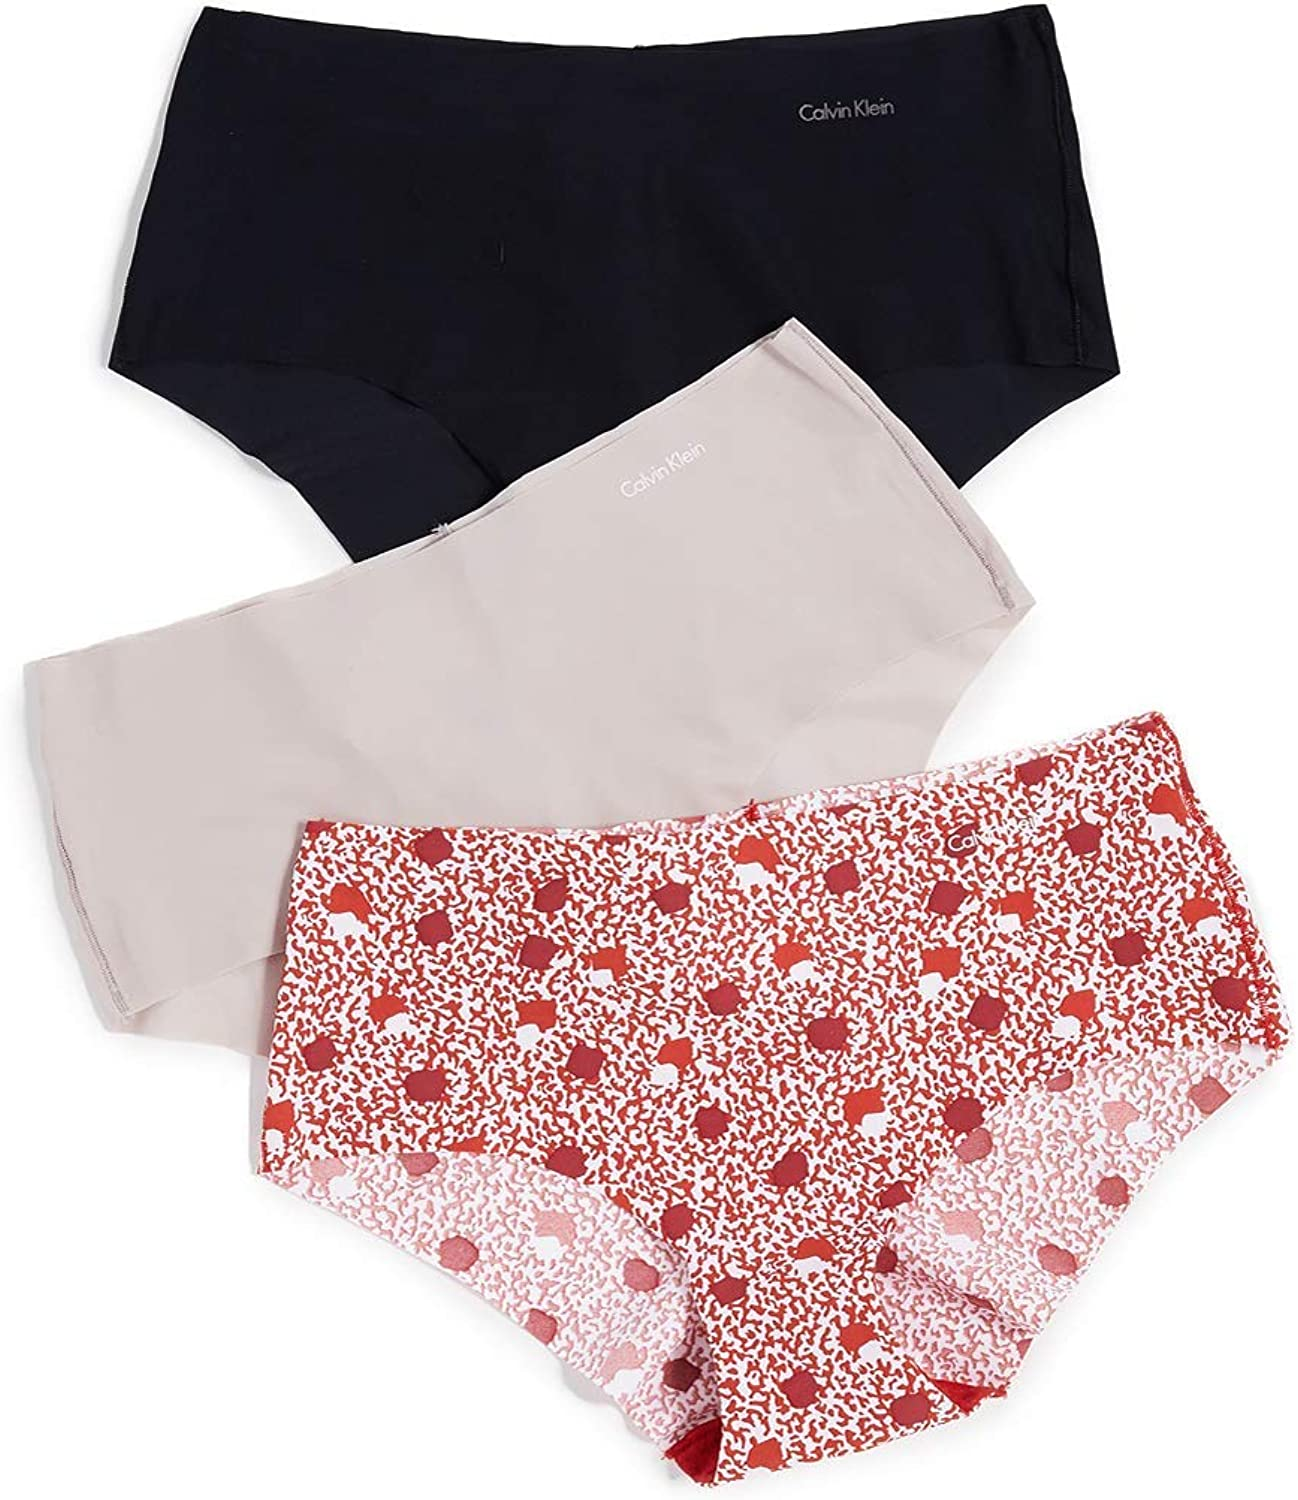 Calvin Klein Ropa interior Invisibles Hipster 3 Pack - Multi - M ...